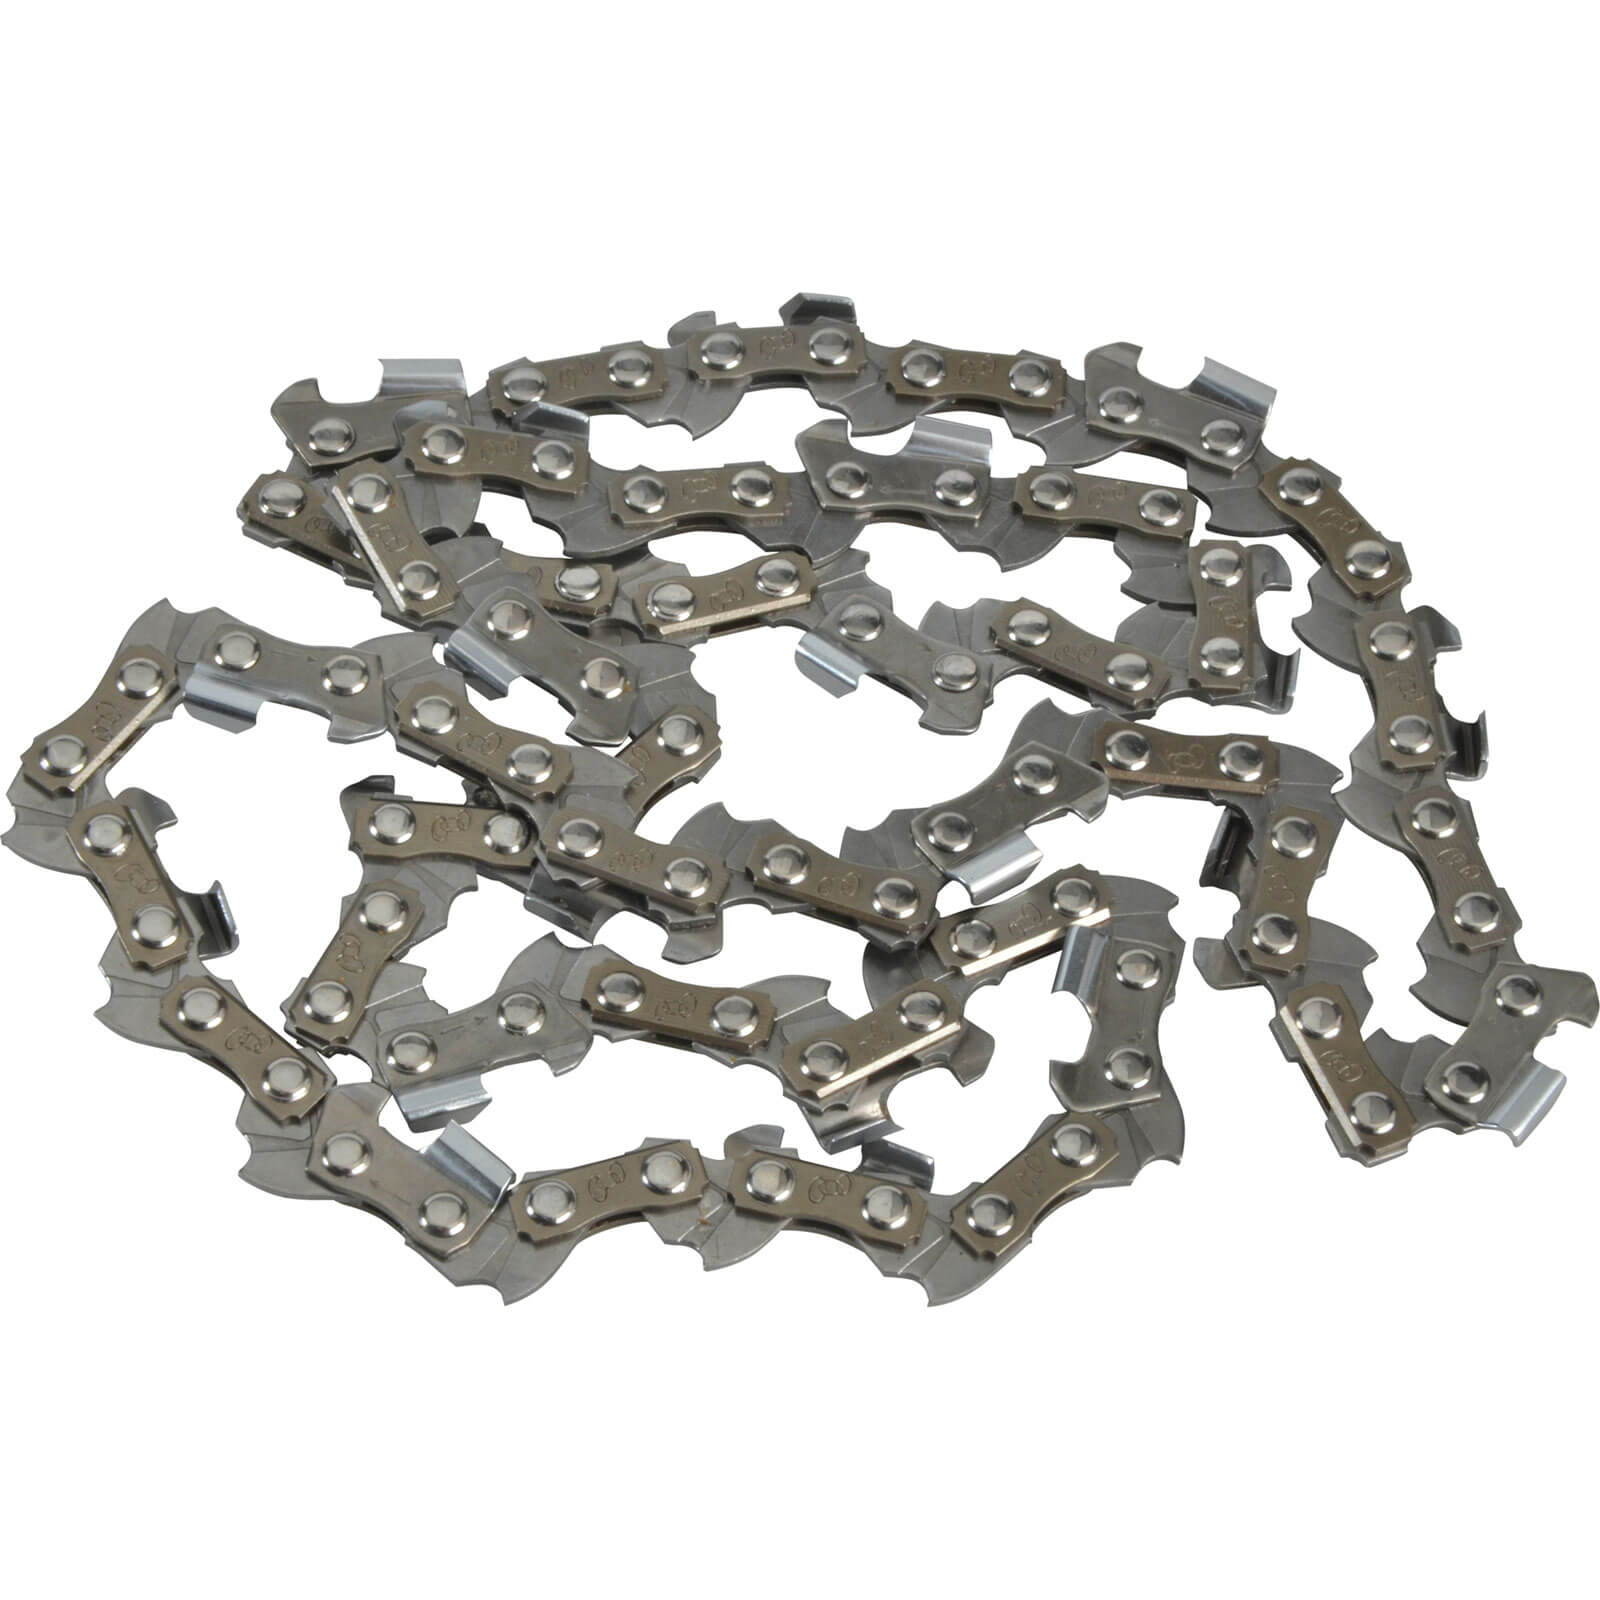 ALM Replacement Chainsaw Lo-Kick Chain 3/8&quot x 44 Links for 30cm Chainsaws